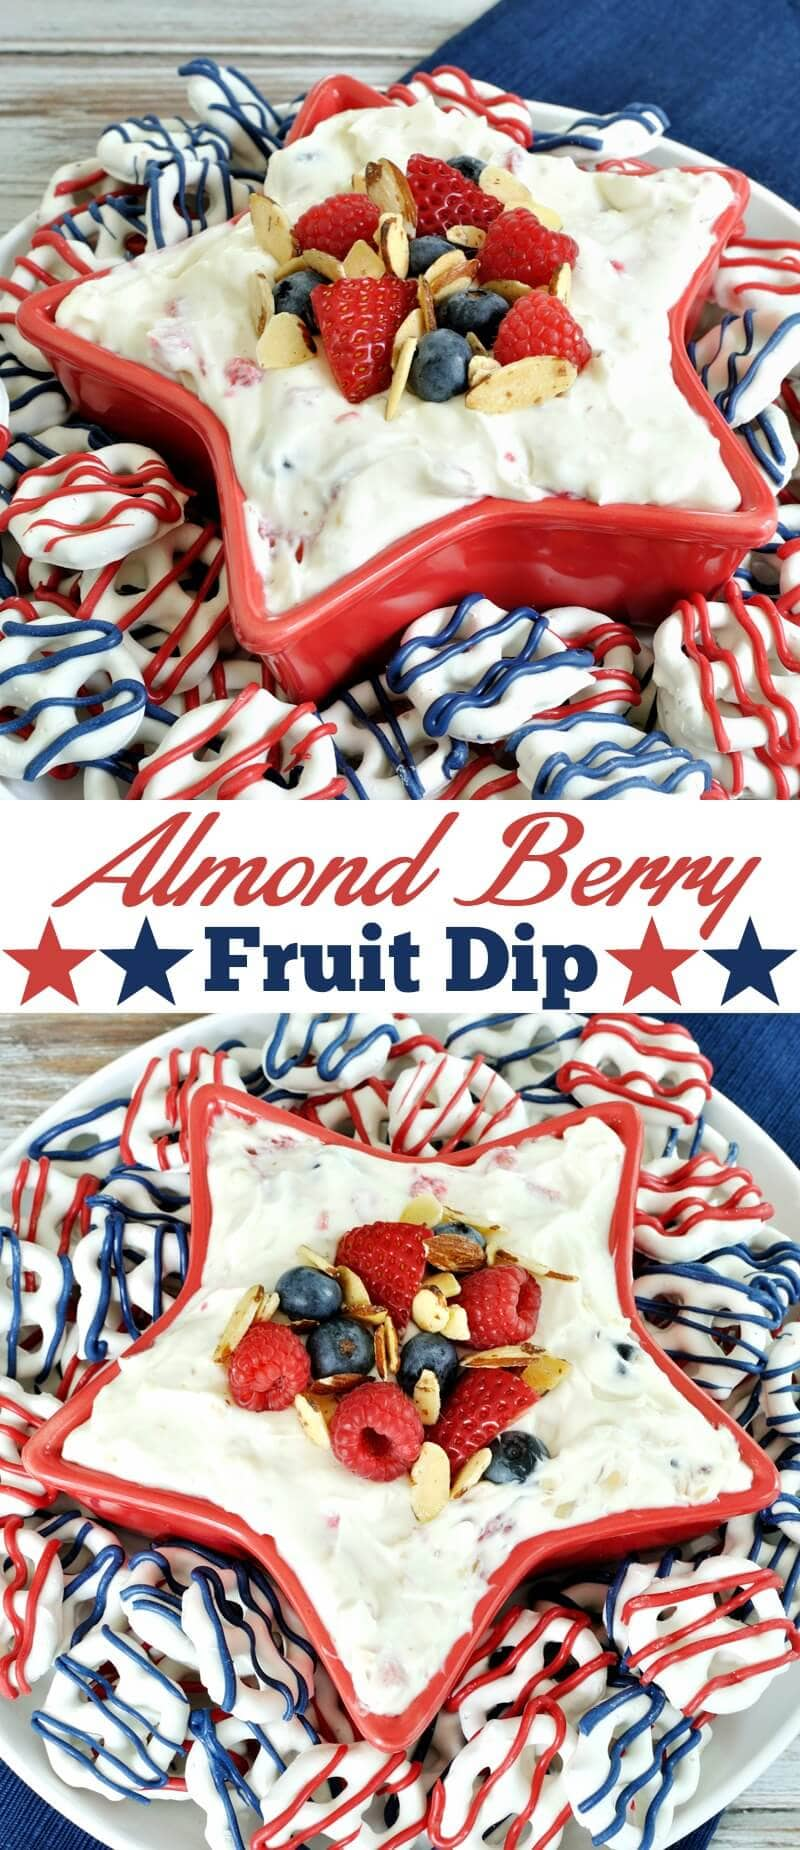 Almond Berry Fruit Dip- a festive dessert for the 4th of July. Dip combines the flavor of almond with berries and cream cheese for a patriotic and easy recipe.